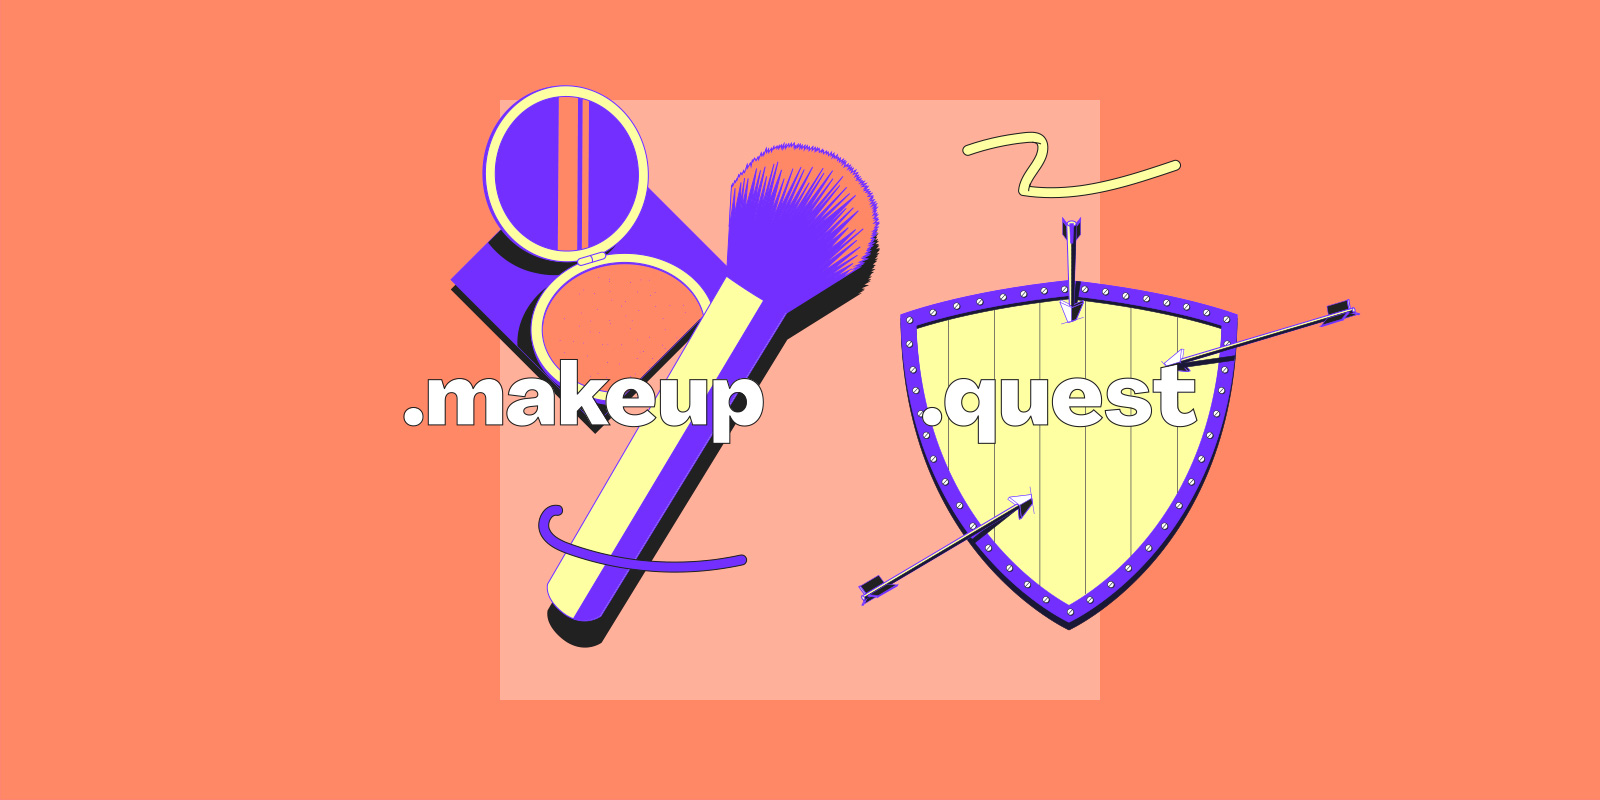 Both .makeup and .quest are re-opening to everyone!